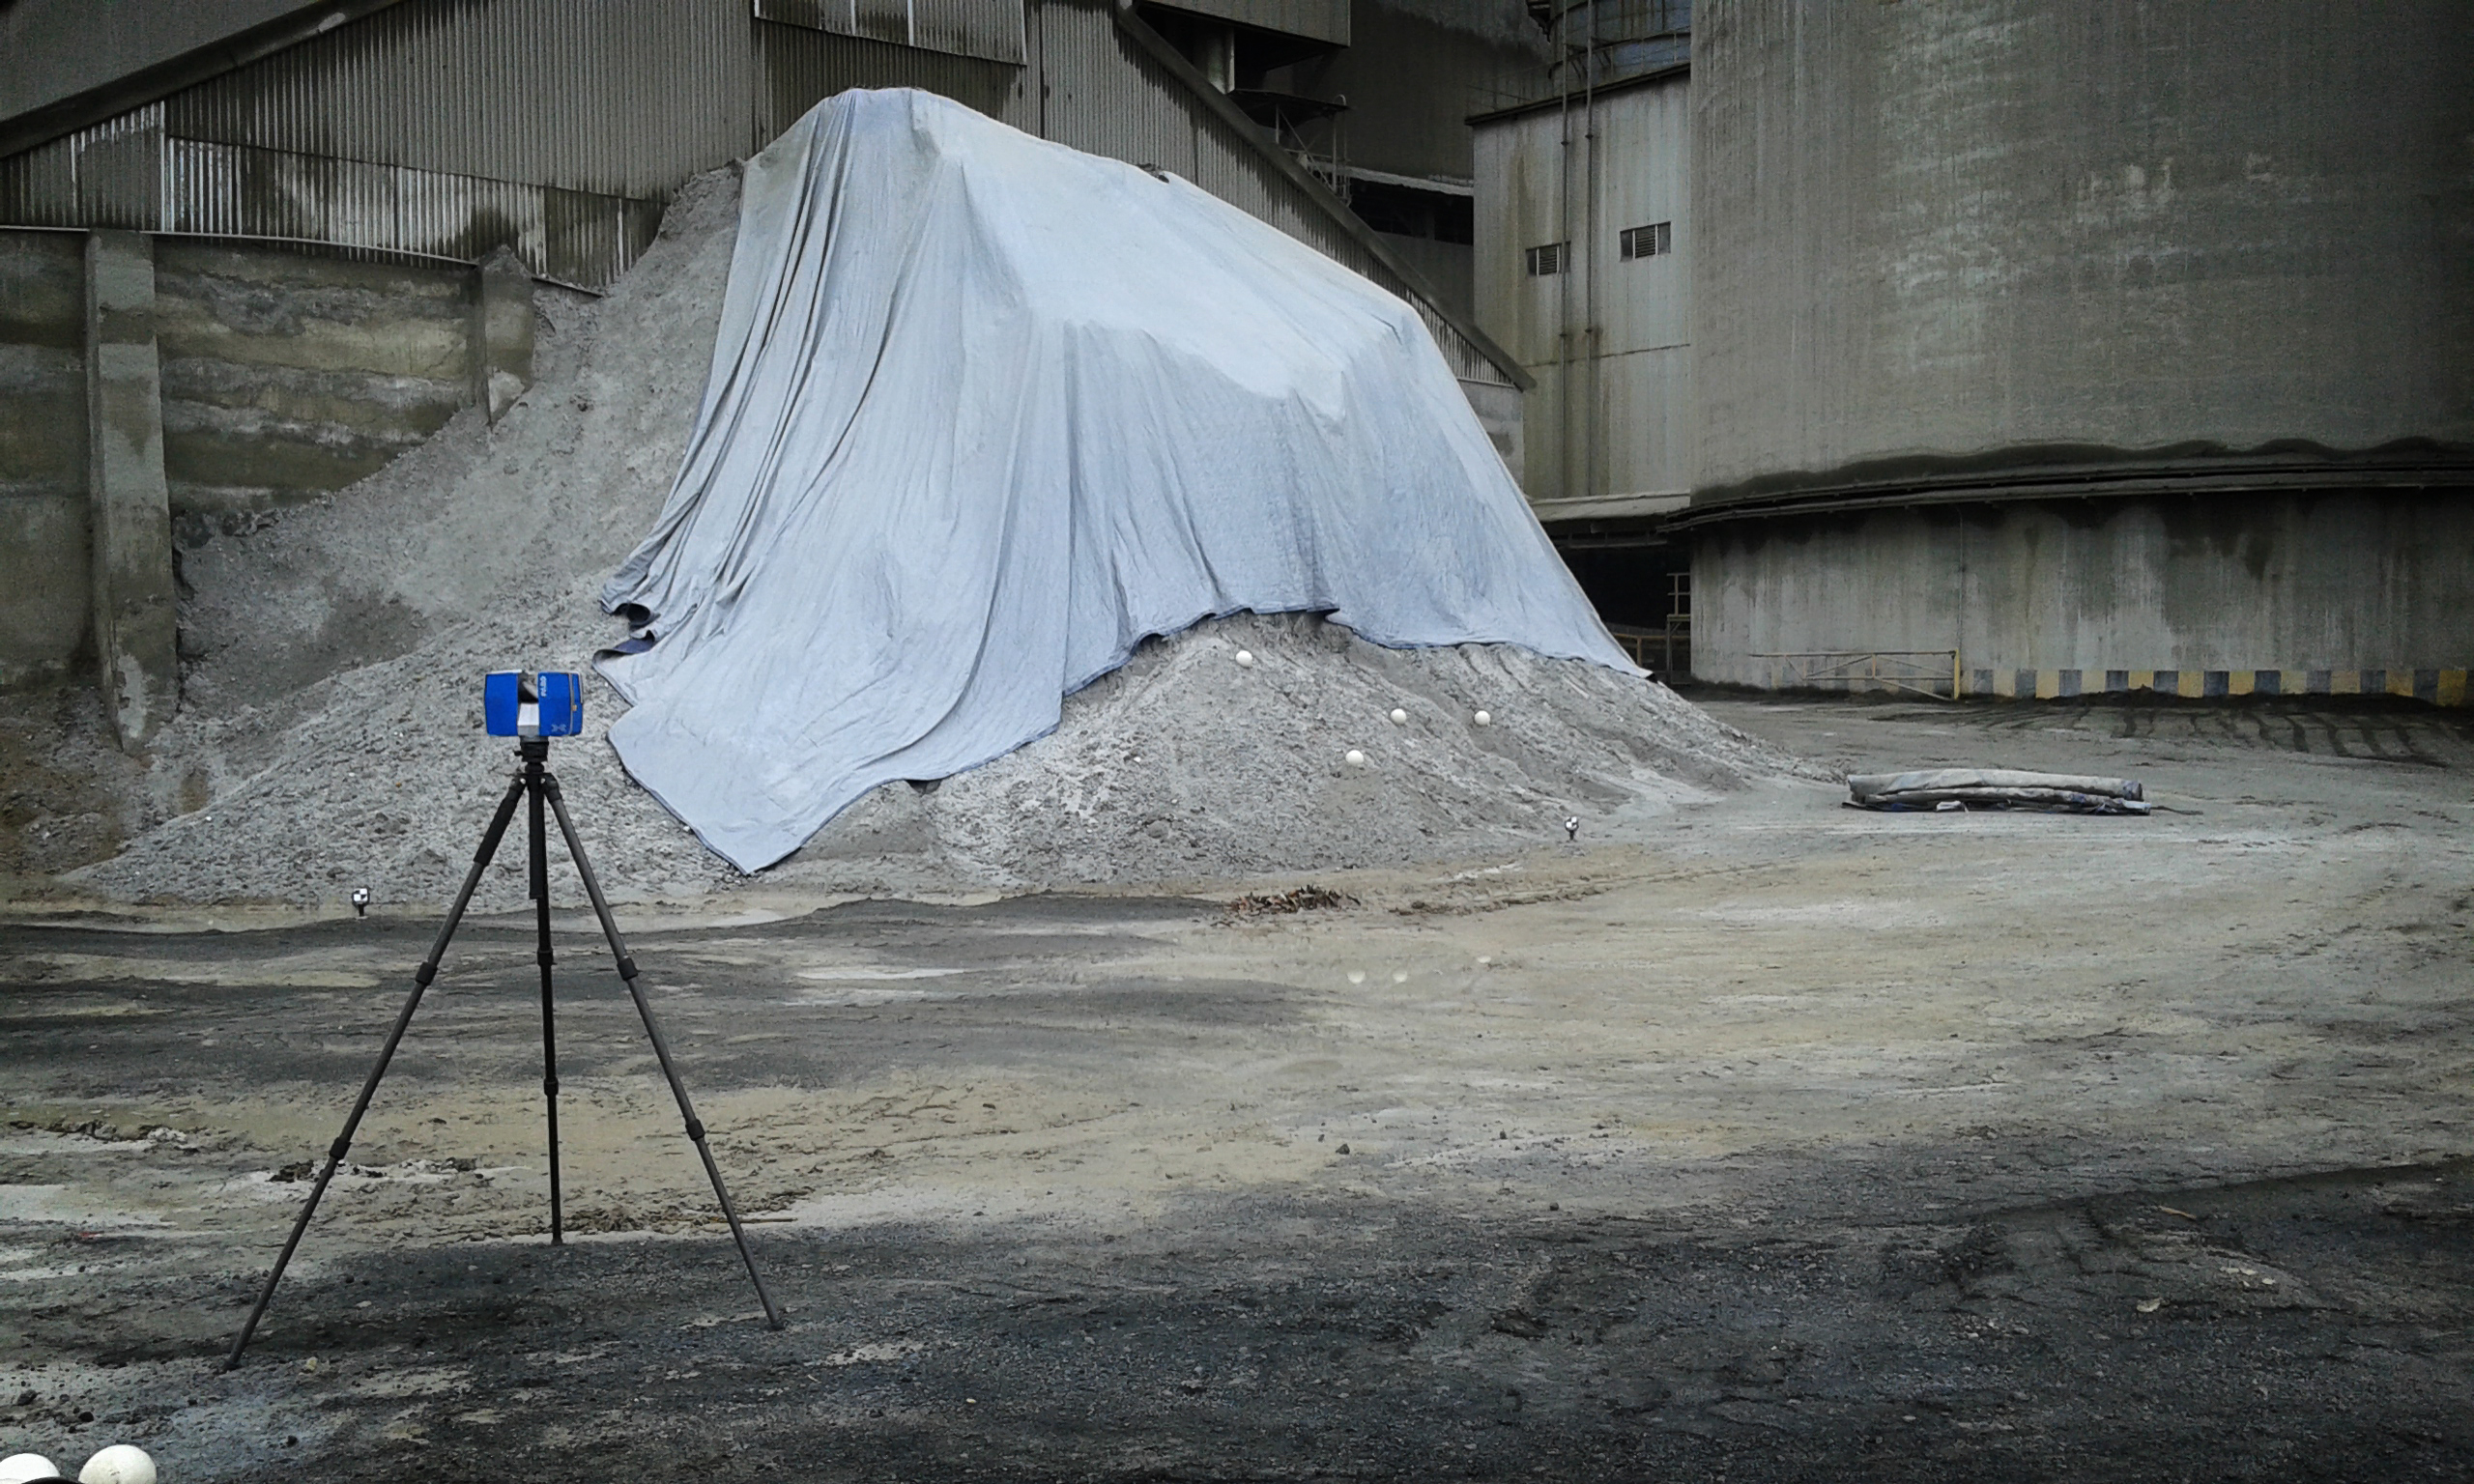 LASER SCANNING VOLUME MEASUREMENT